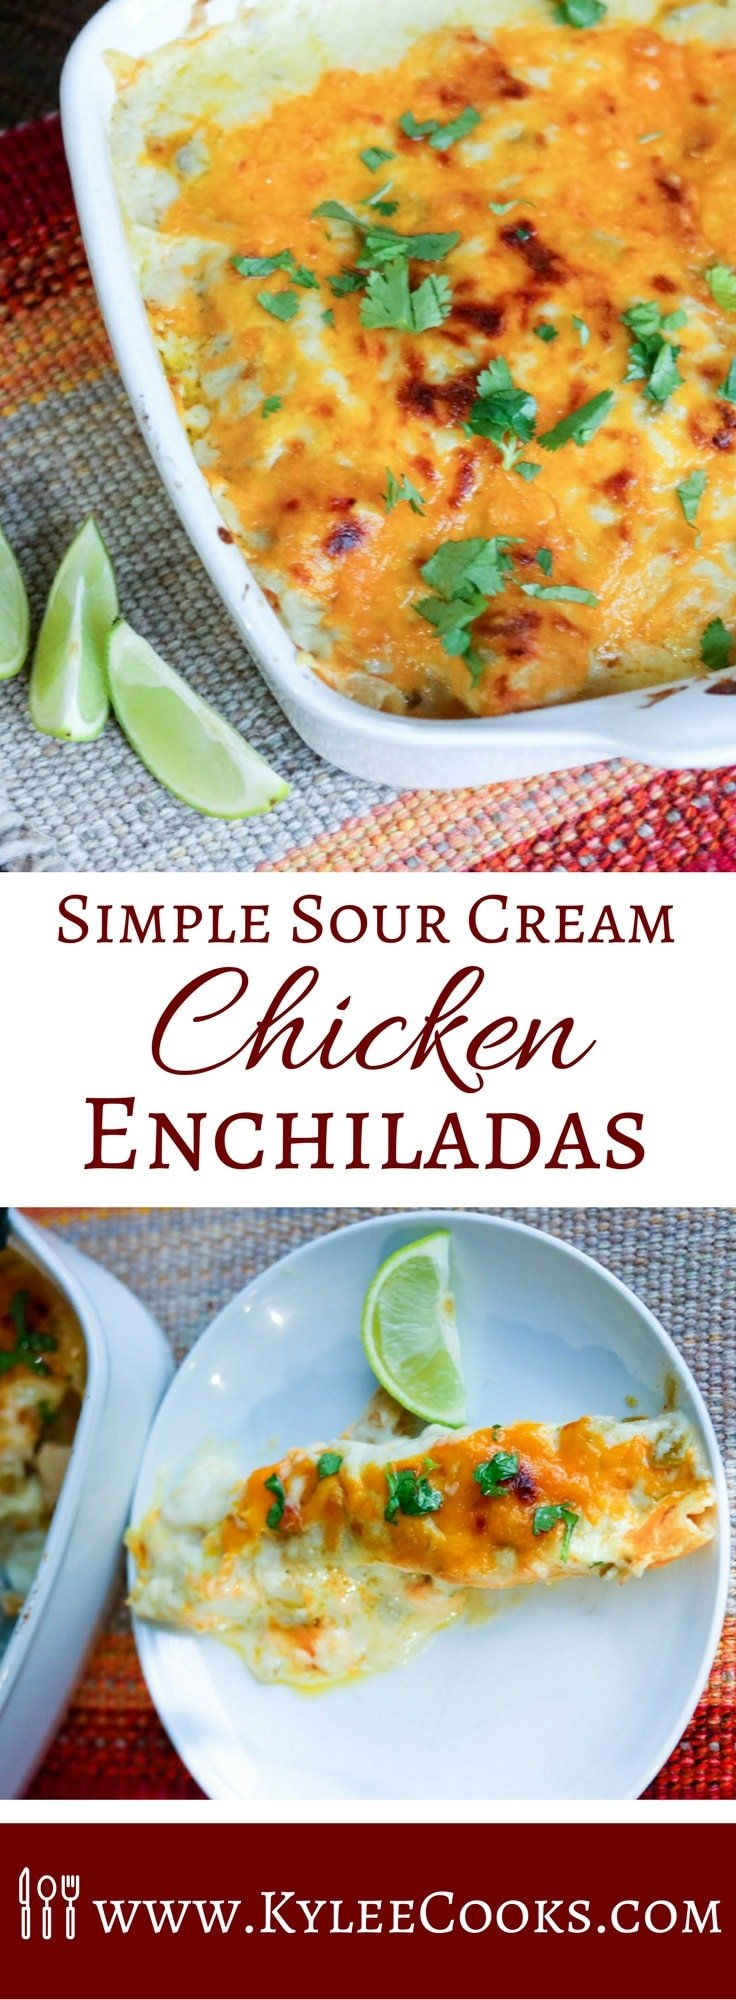 A very easy recipe for Simple Sour Cream Chicken Enchiladas with a creamy homemade green & white sauce. A family friendly weeknight winner! #enchiladas #weeknight #recipe #dinner #kyleecooks